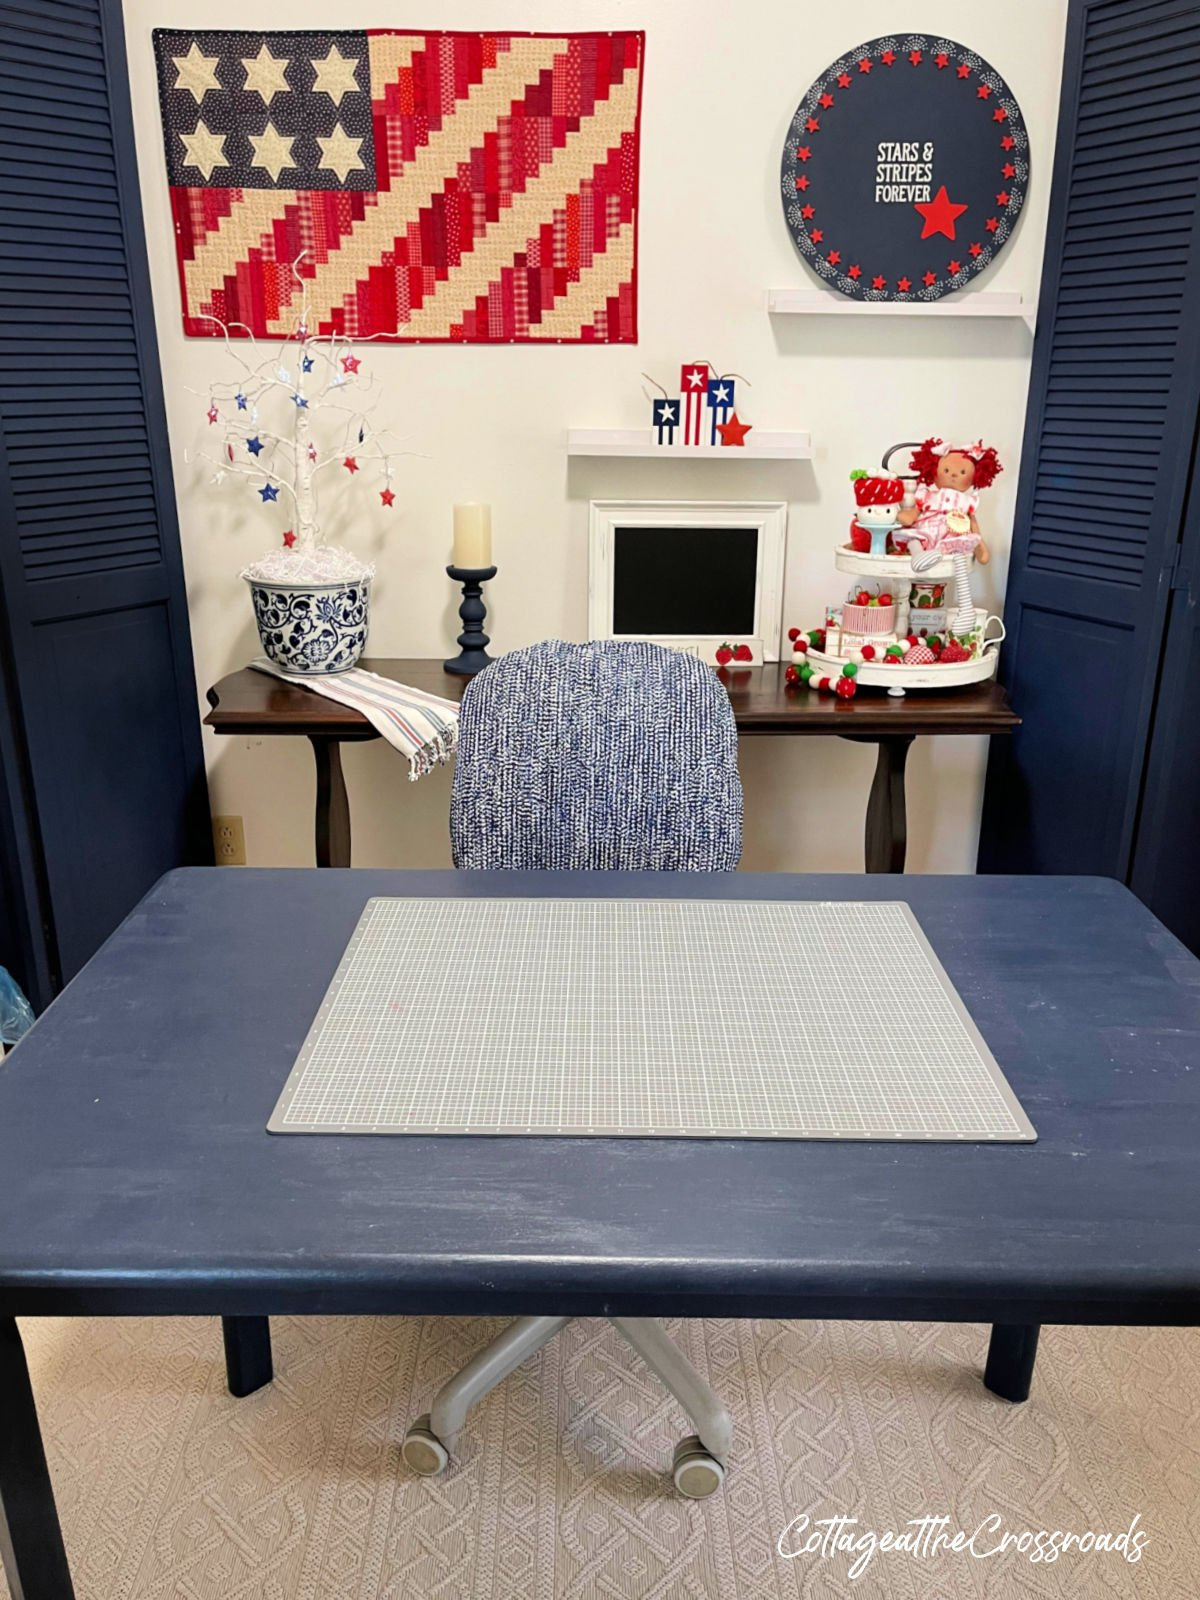 view of table in craft room